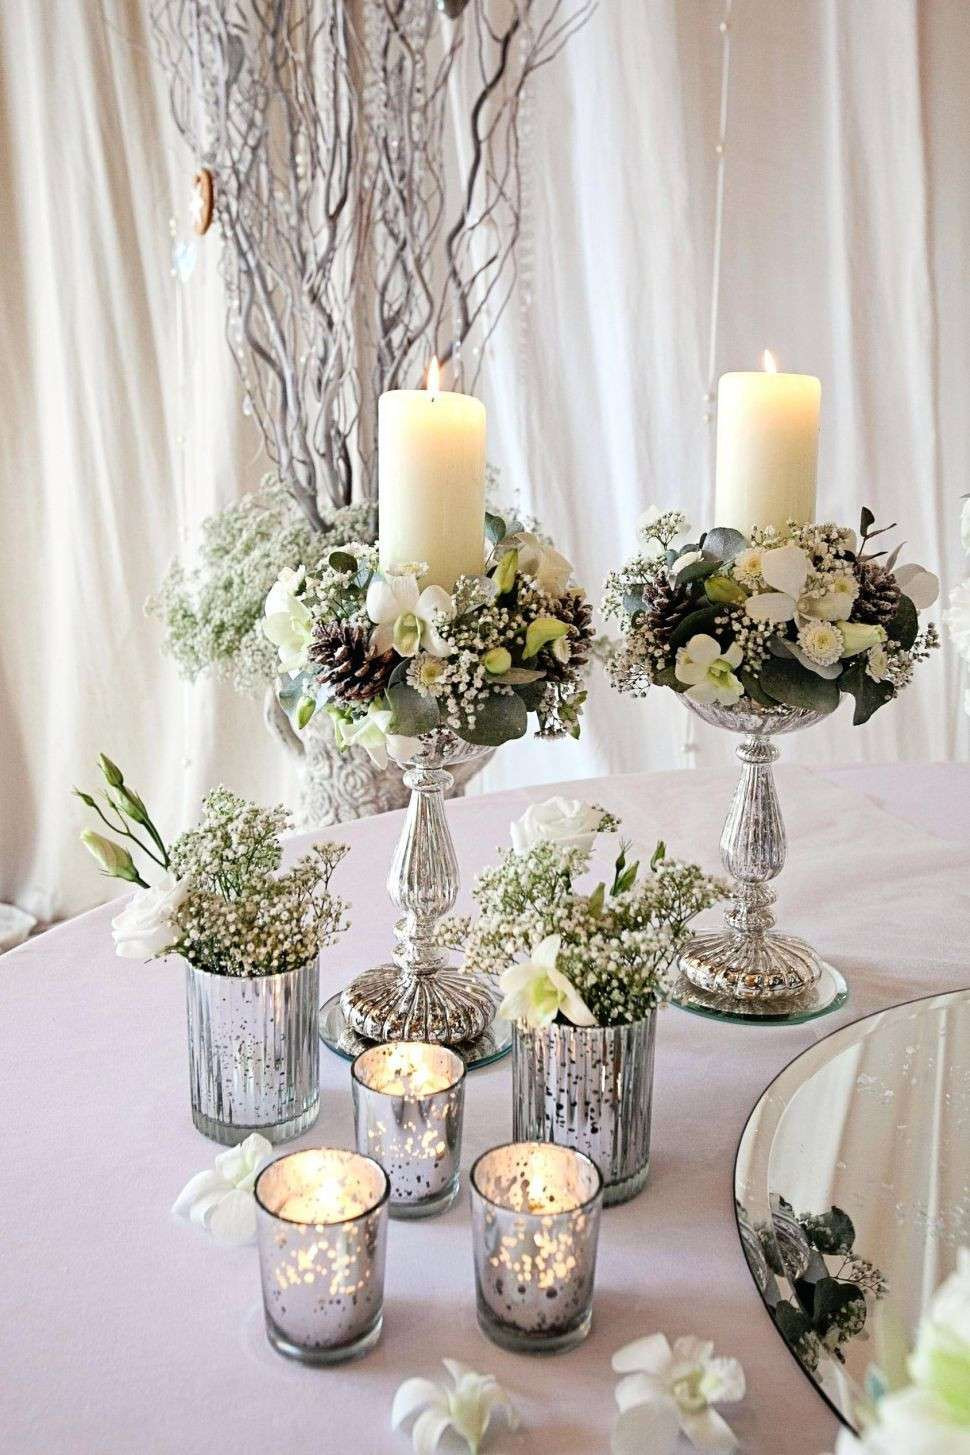 27 Ideal Candle Vases wholesale 2021 free download candle vases wholesale of big bedroom ideas beautiful living room vases wholesale new h vases regarding big bedroom ideas beautiful living room vases wholesale new h vases big tall i 0d for